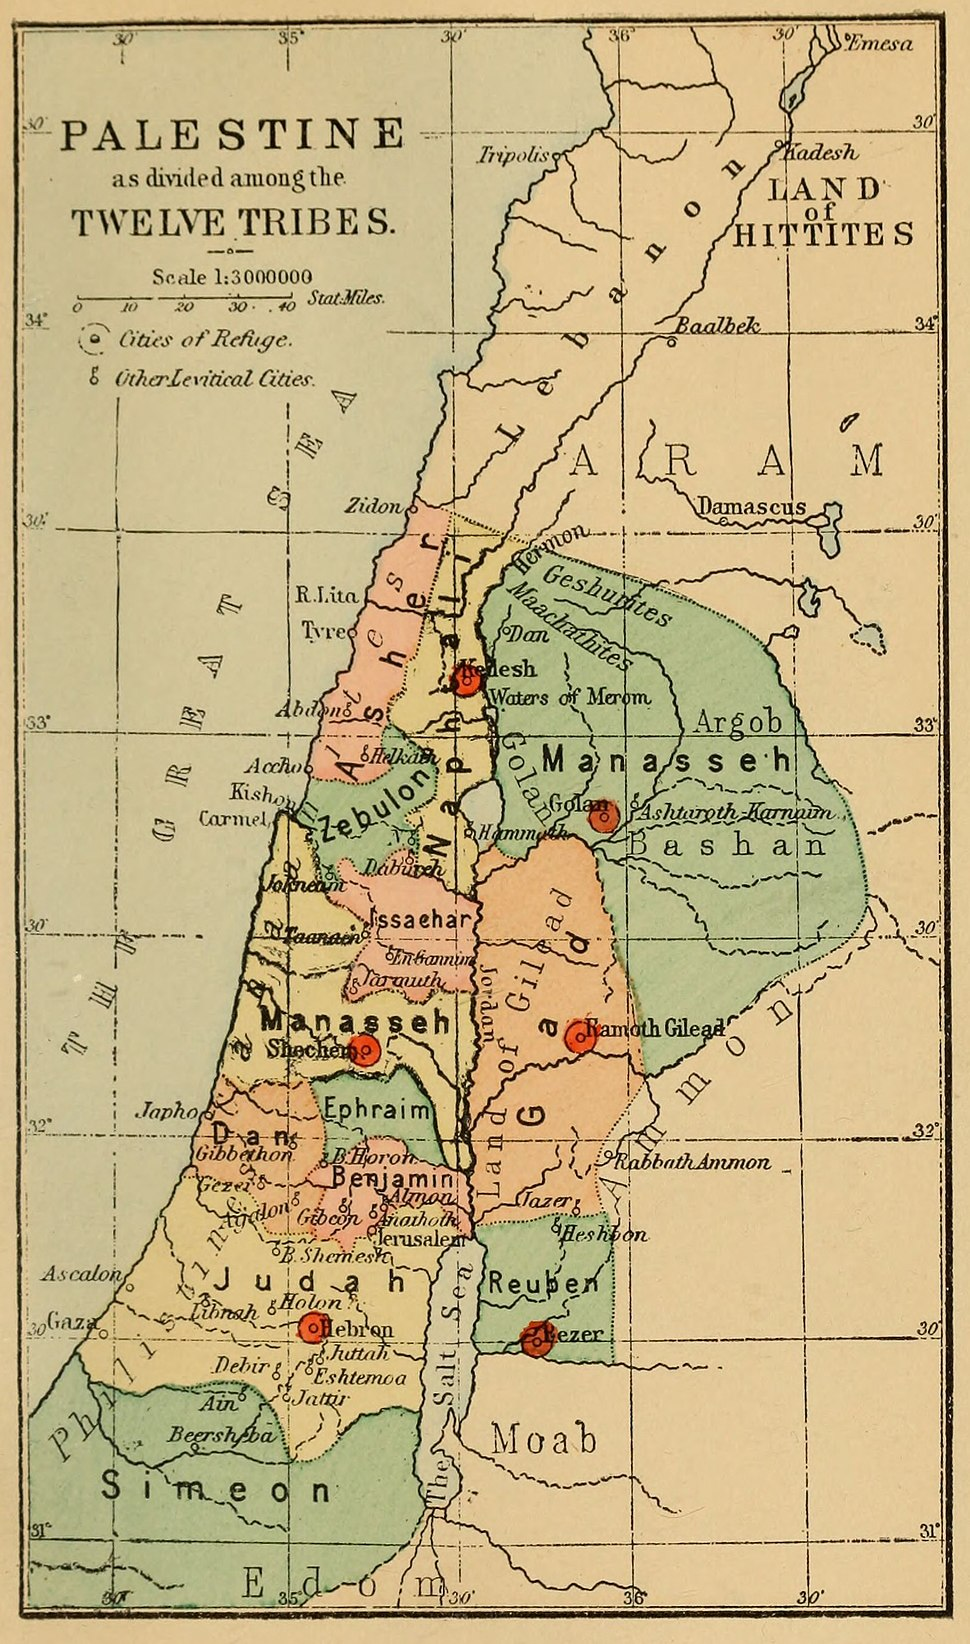 1889 Palestine, as divided among the Twelve Tribes